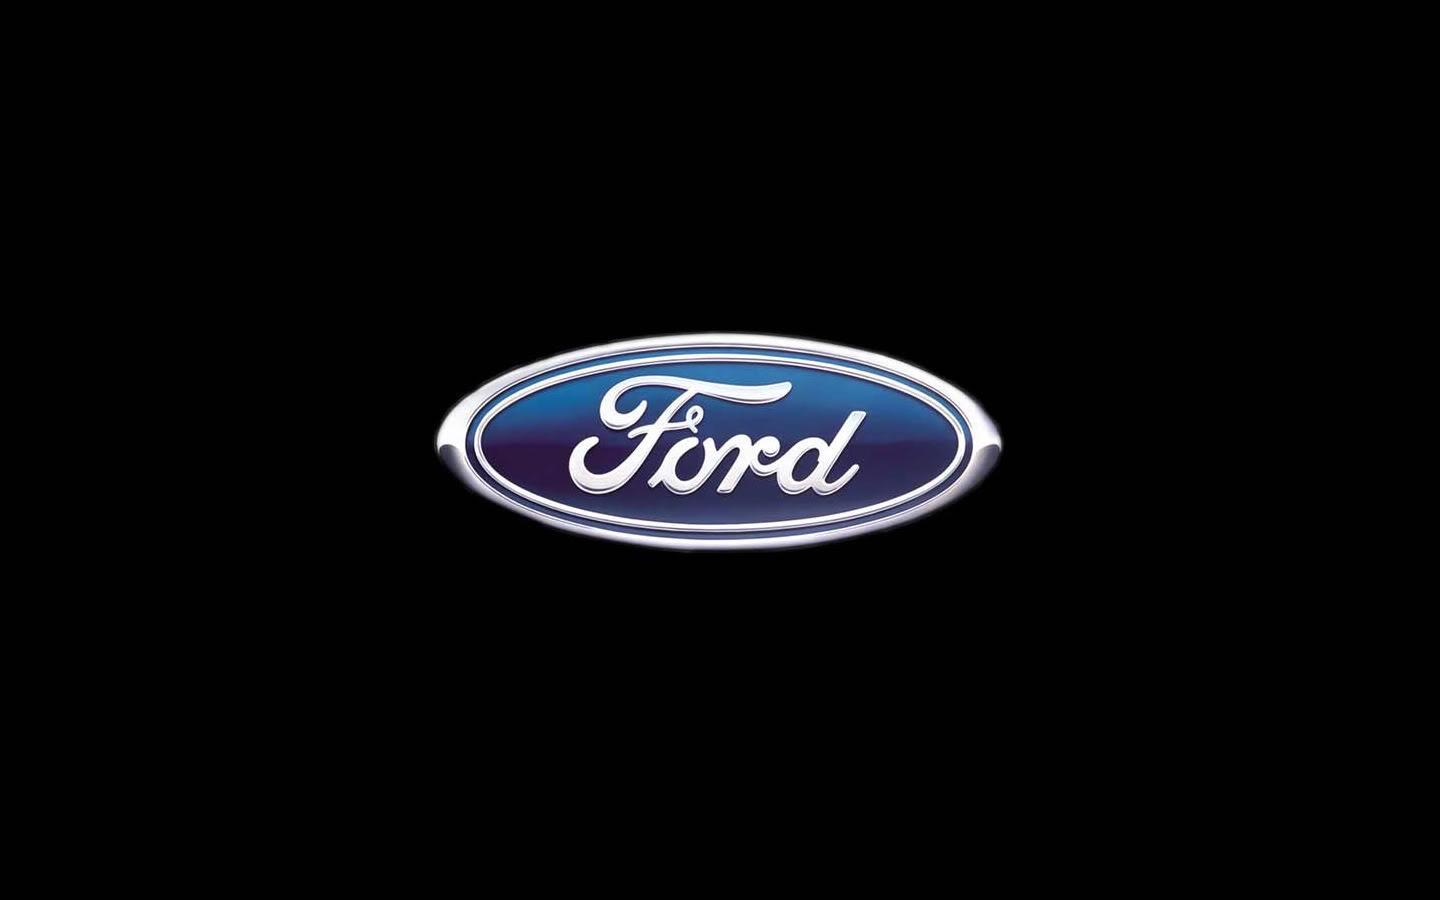 What Ford Model are You?